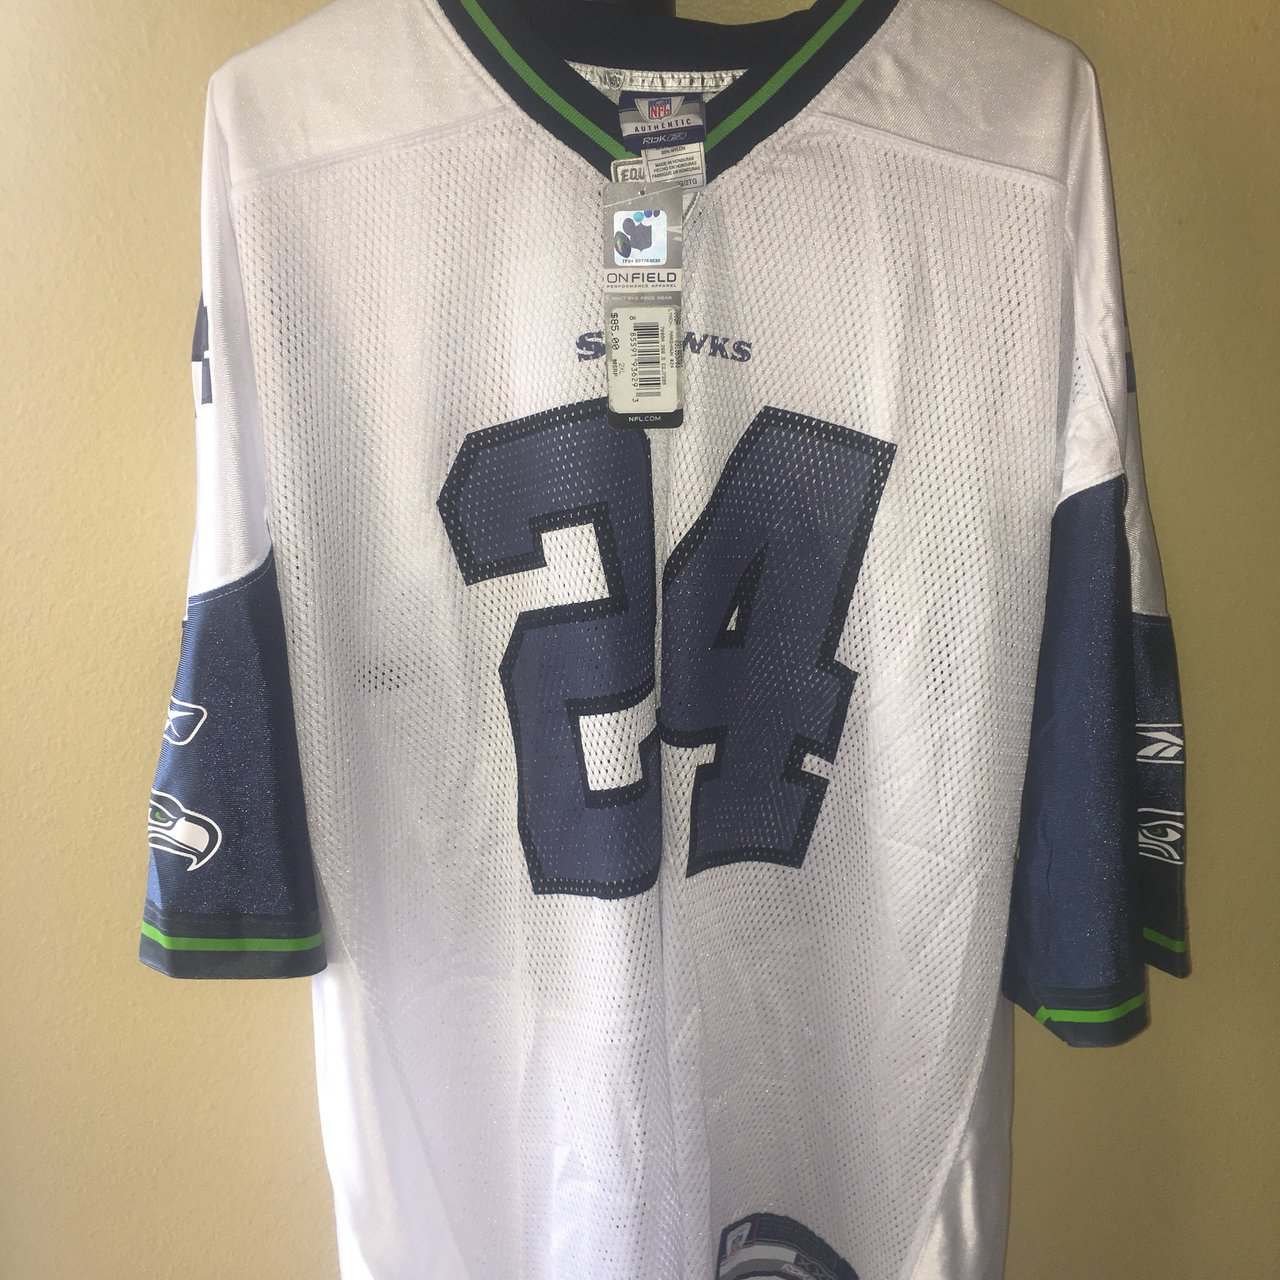 32c1b18cc65 Brand new w/ Tags Marshawn Lynch Seattle Seahawks Jersey on - Depop